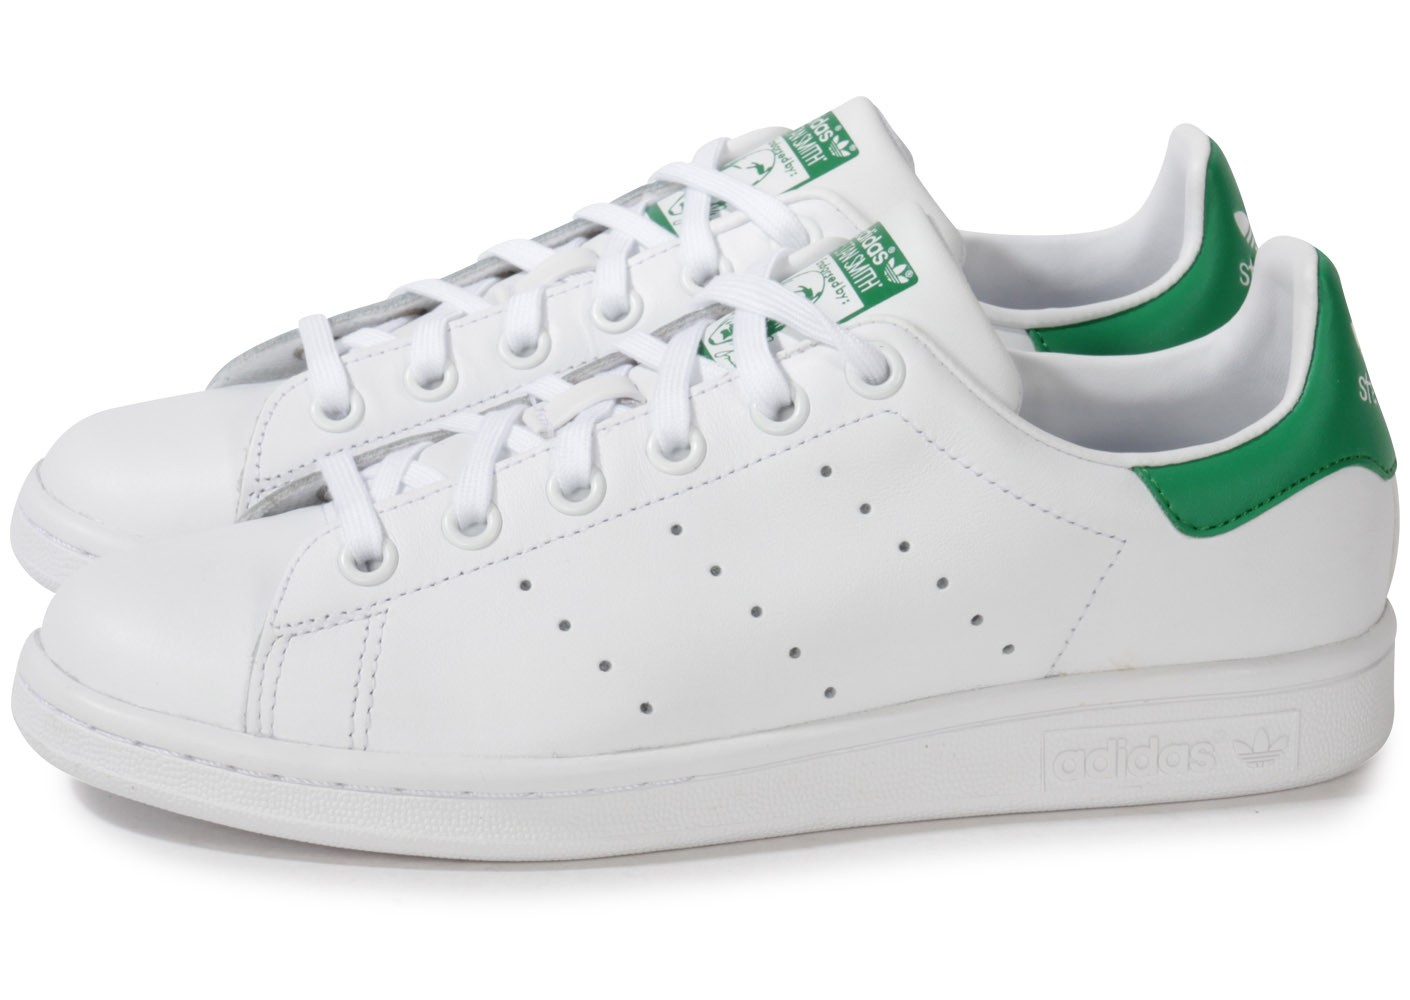 Adidas Stan Smith Tunisie Prix ChaussureAdidasonlineoutlet.fr